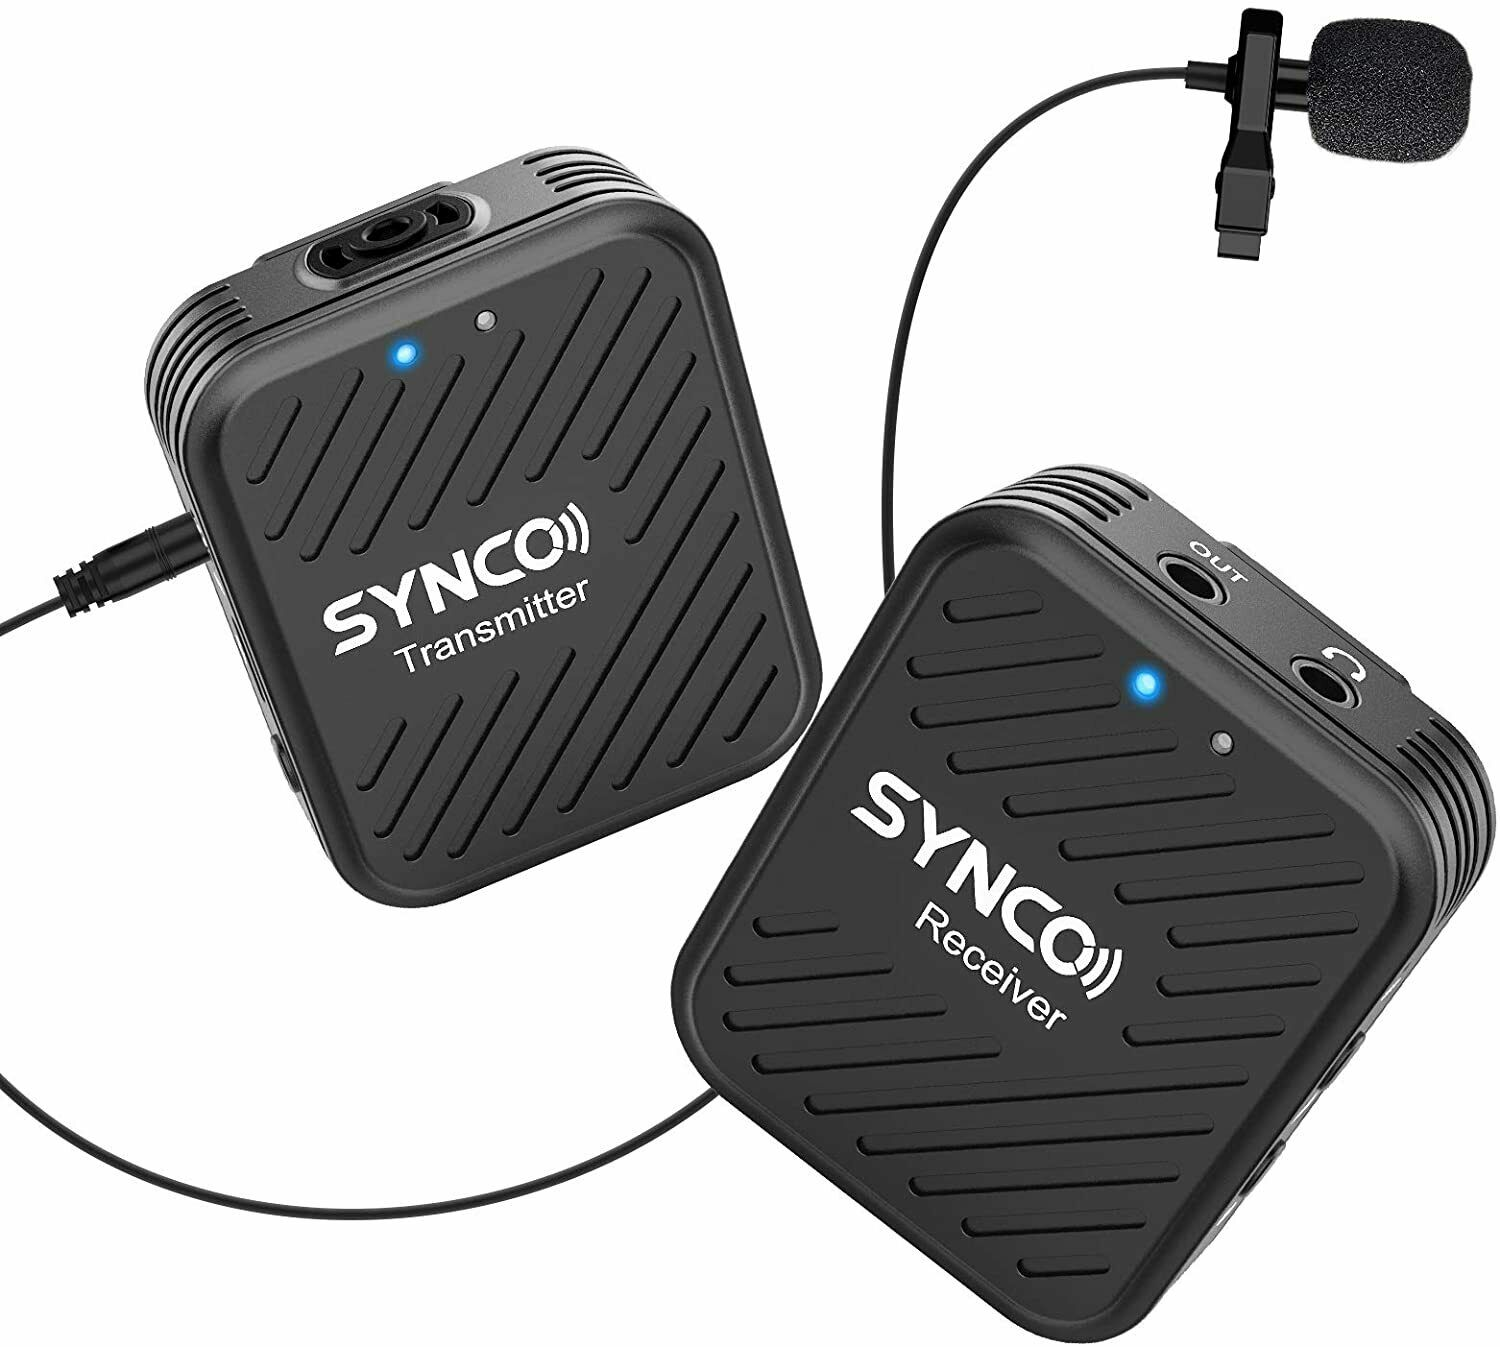 SYNCO G1(A1) Lavalier 2.4 GHz wireless microphone system For smartphone camera